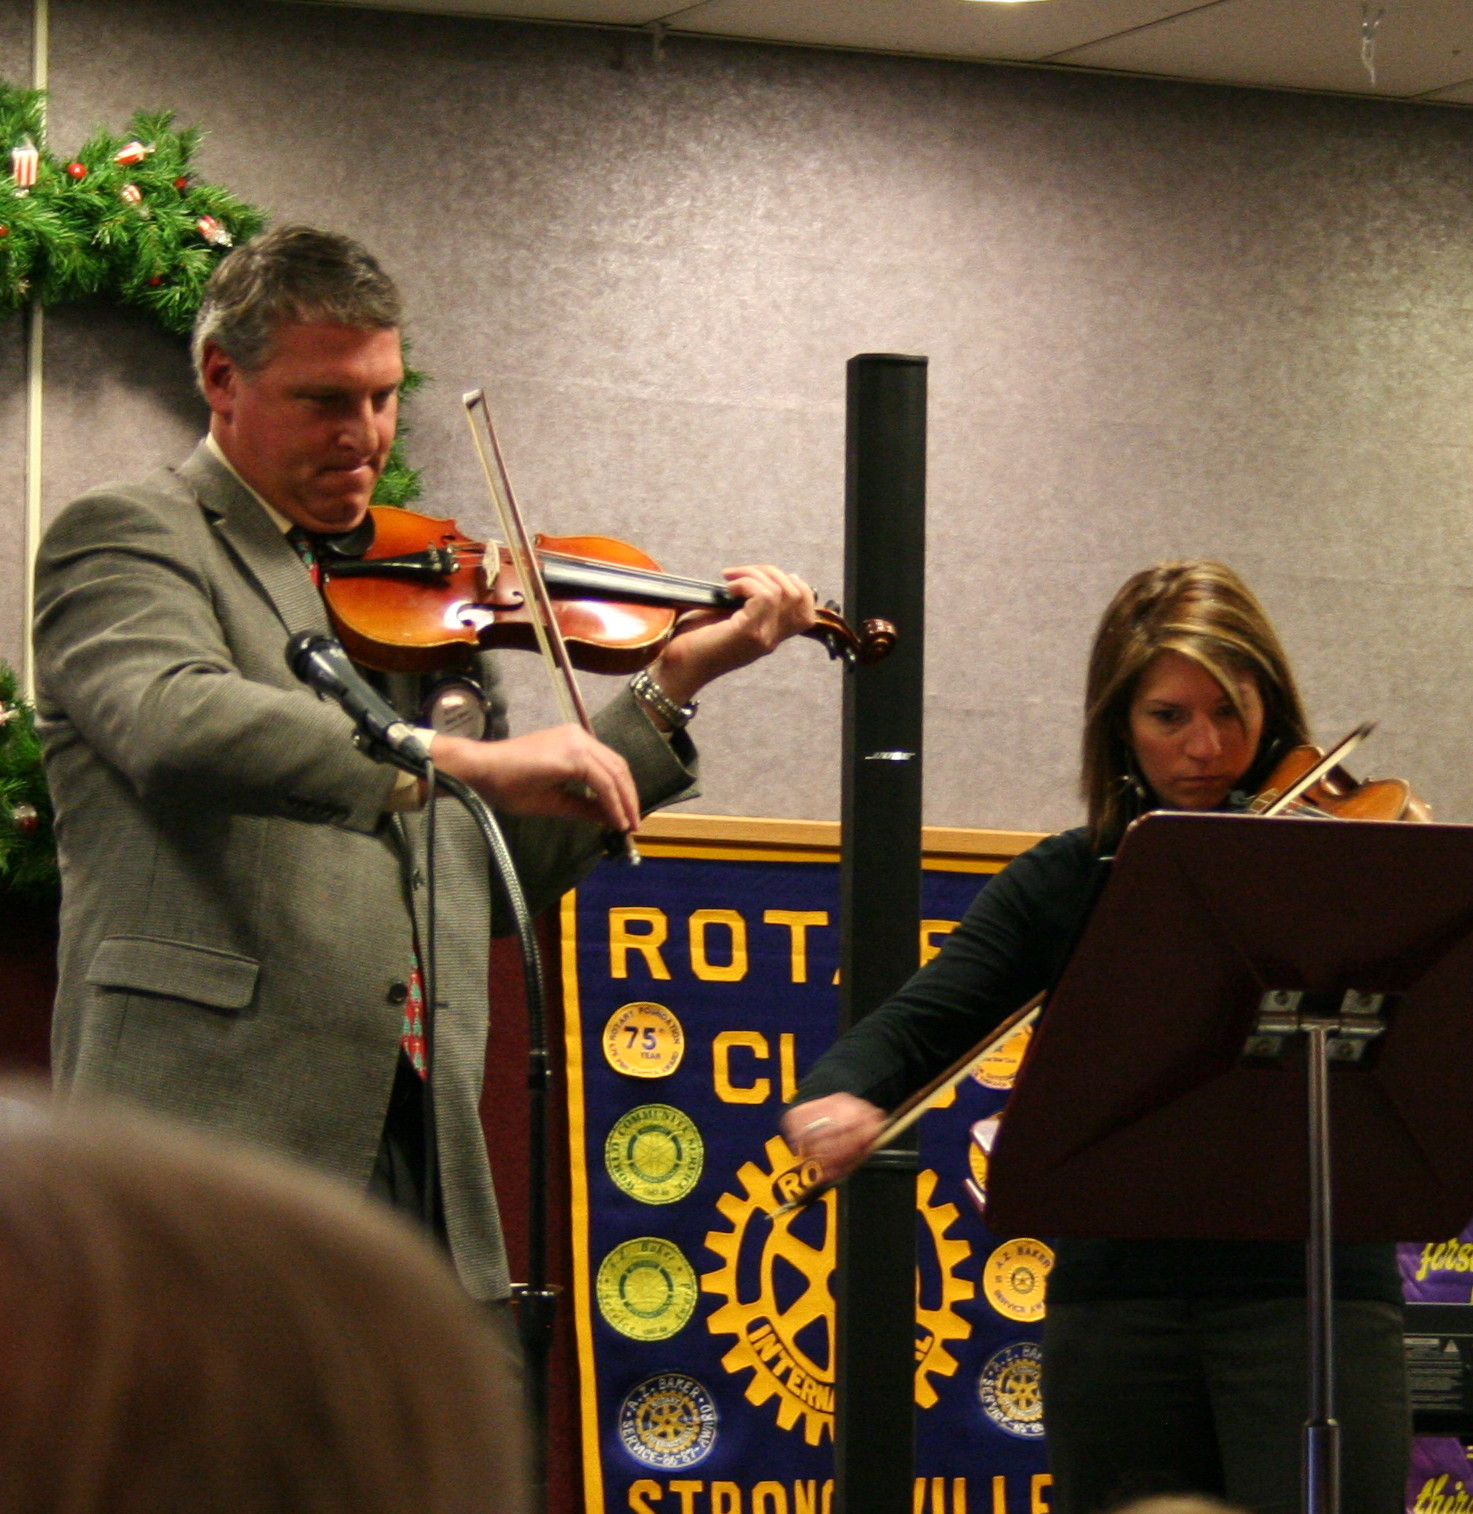 Rotary Club of Strongsville